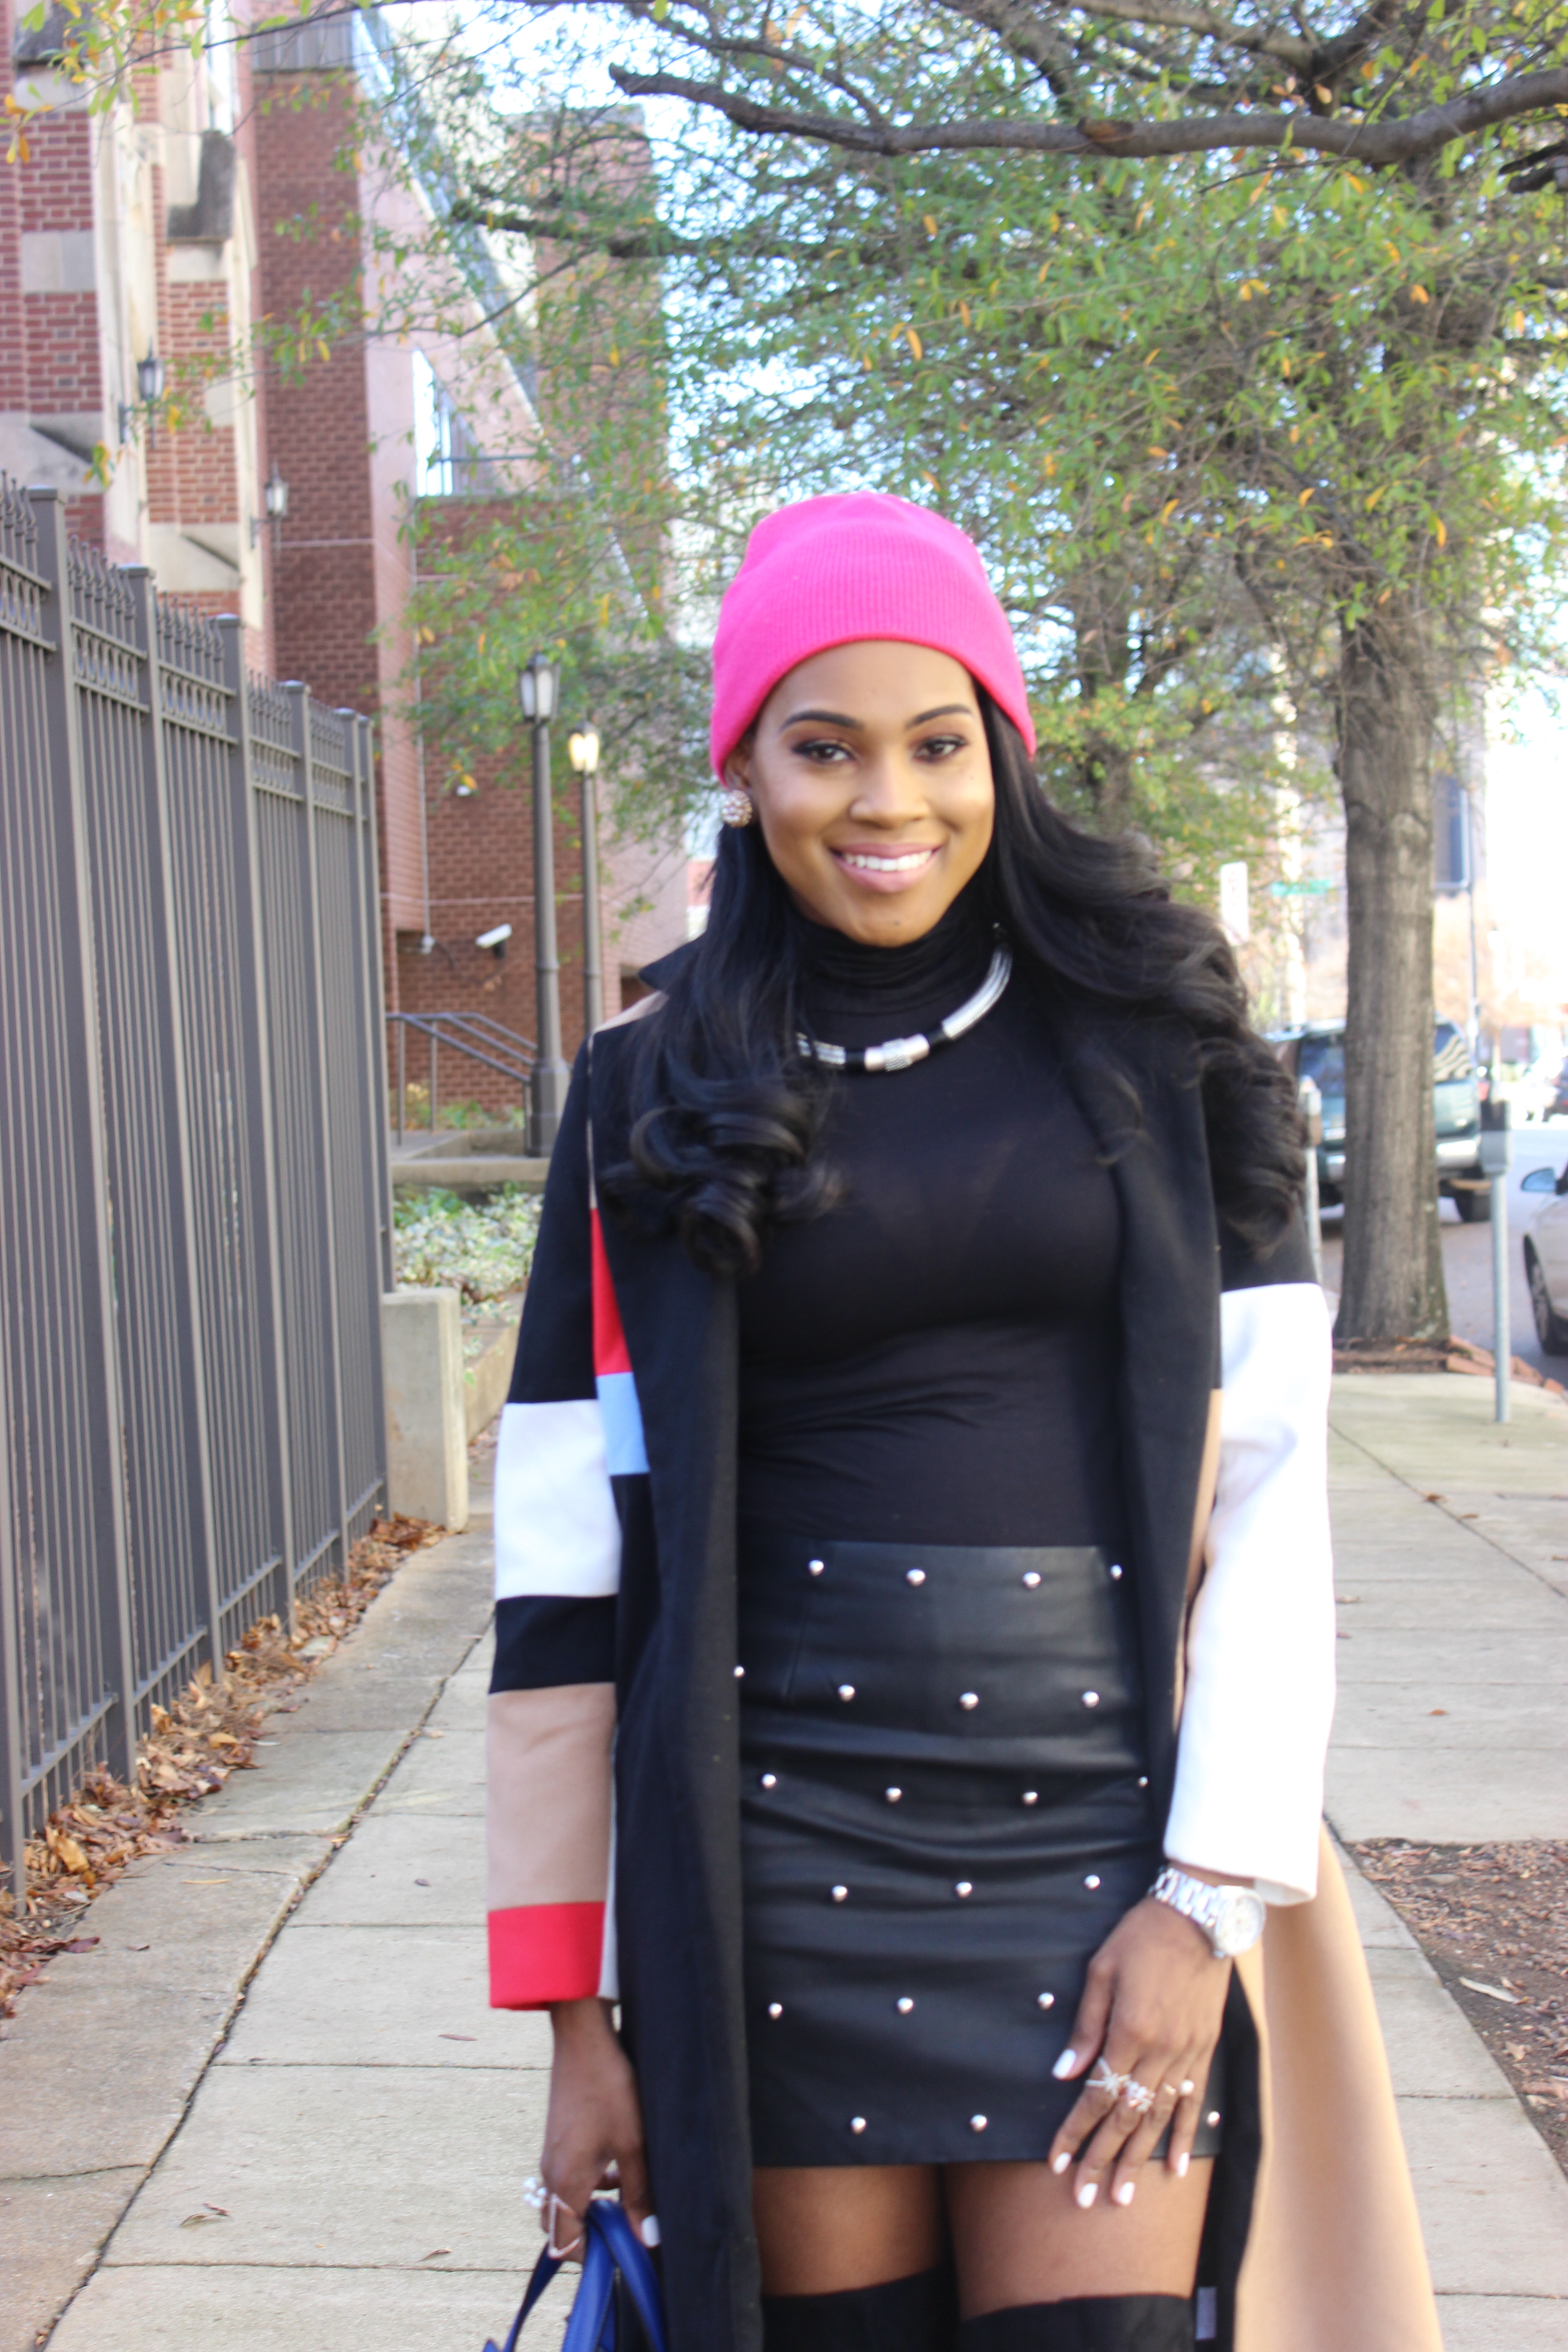 Style-Files-SheIn-Multicolor-Lapel-Color-Block-Coat-Forever21-Faux-Leather-studded-mini-skirt-black-sheer-turtleneck-Truffle-Collection-Over- The-Knee-Lace-Up-Back-High-Heeled-Boots-Hot-Pink-Beanie-Winter-Coat-Style-Guide-Oohlalablog-32